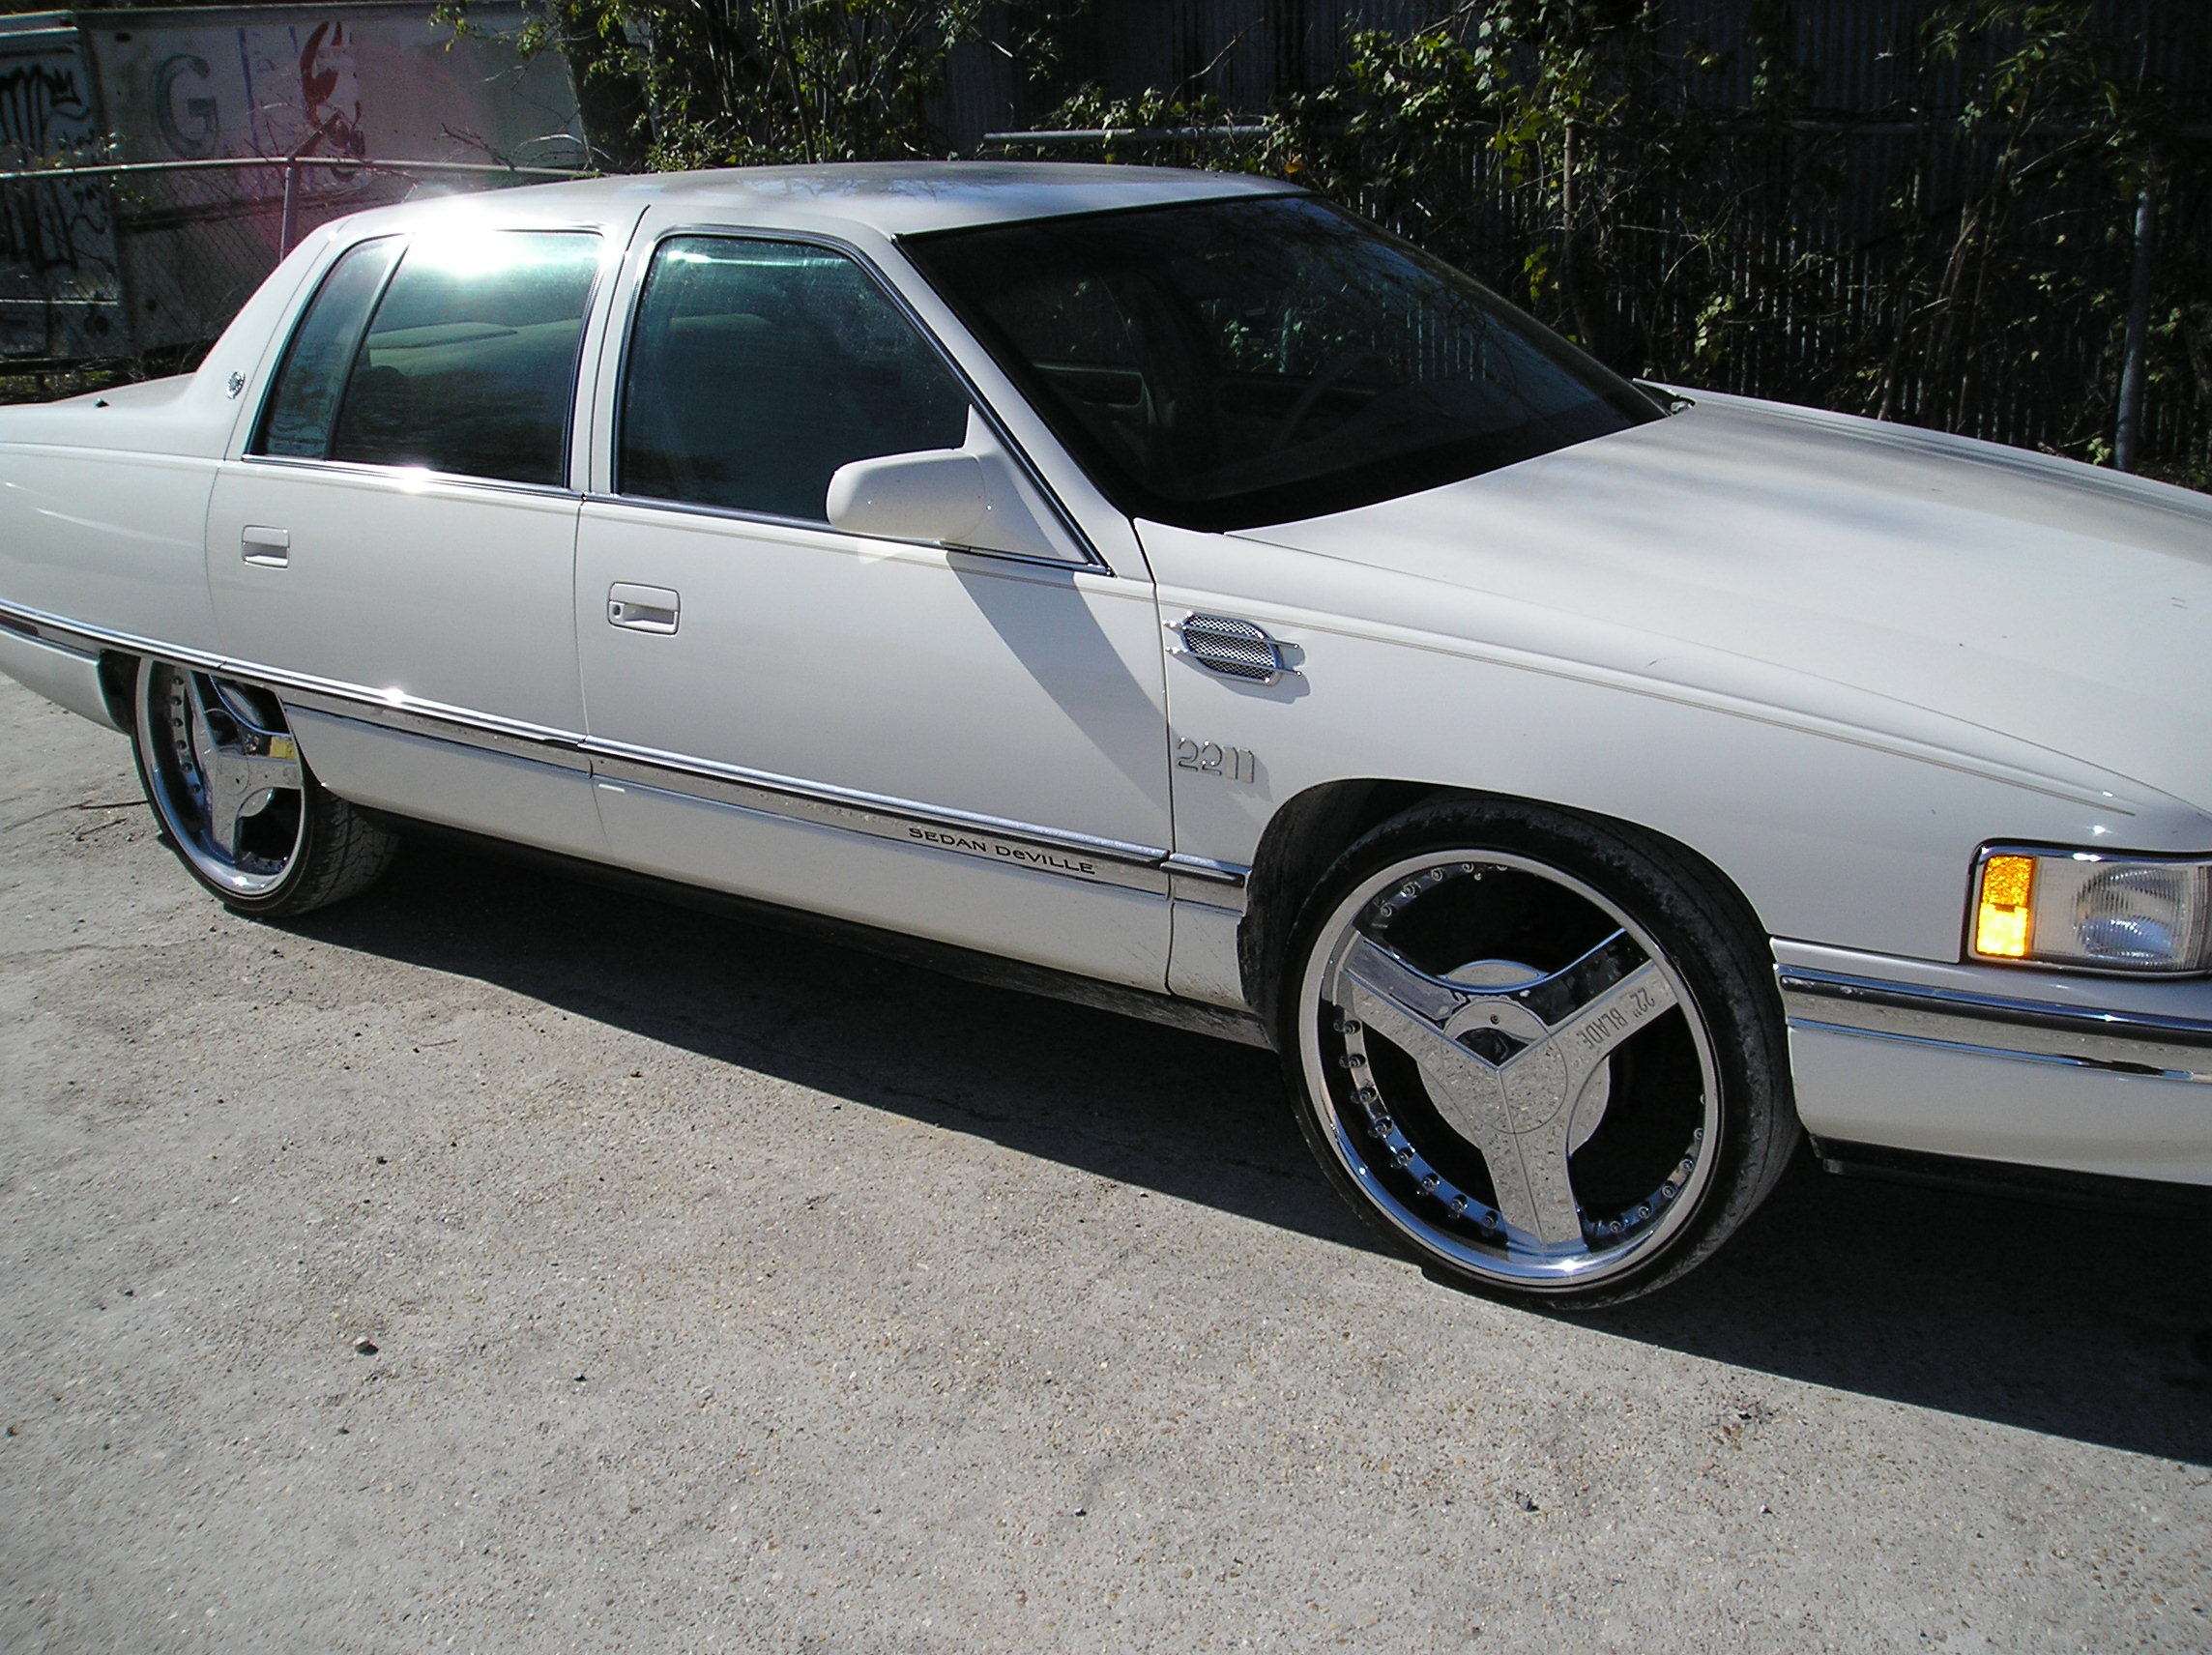 jigacityboss1 39 s 1996 cadillac deville in baton rouge la. Black Bedroom Furniture Sets. Home Design Ideas